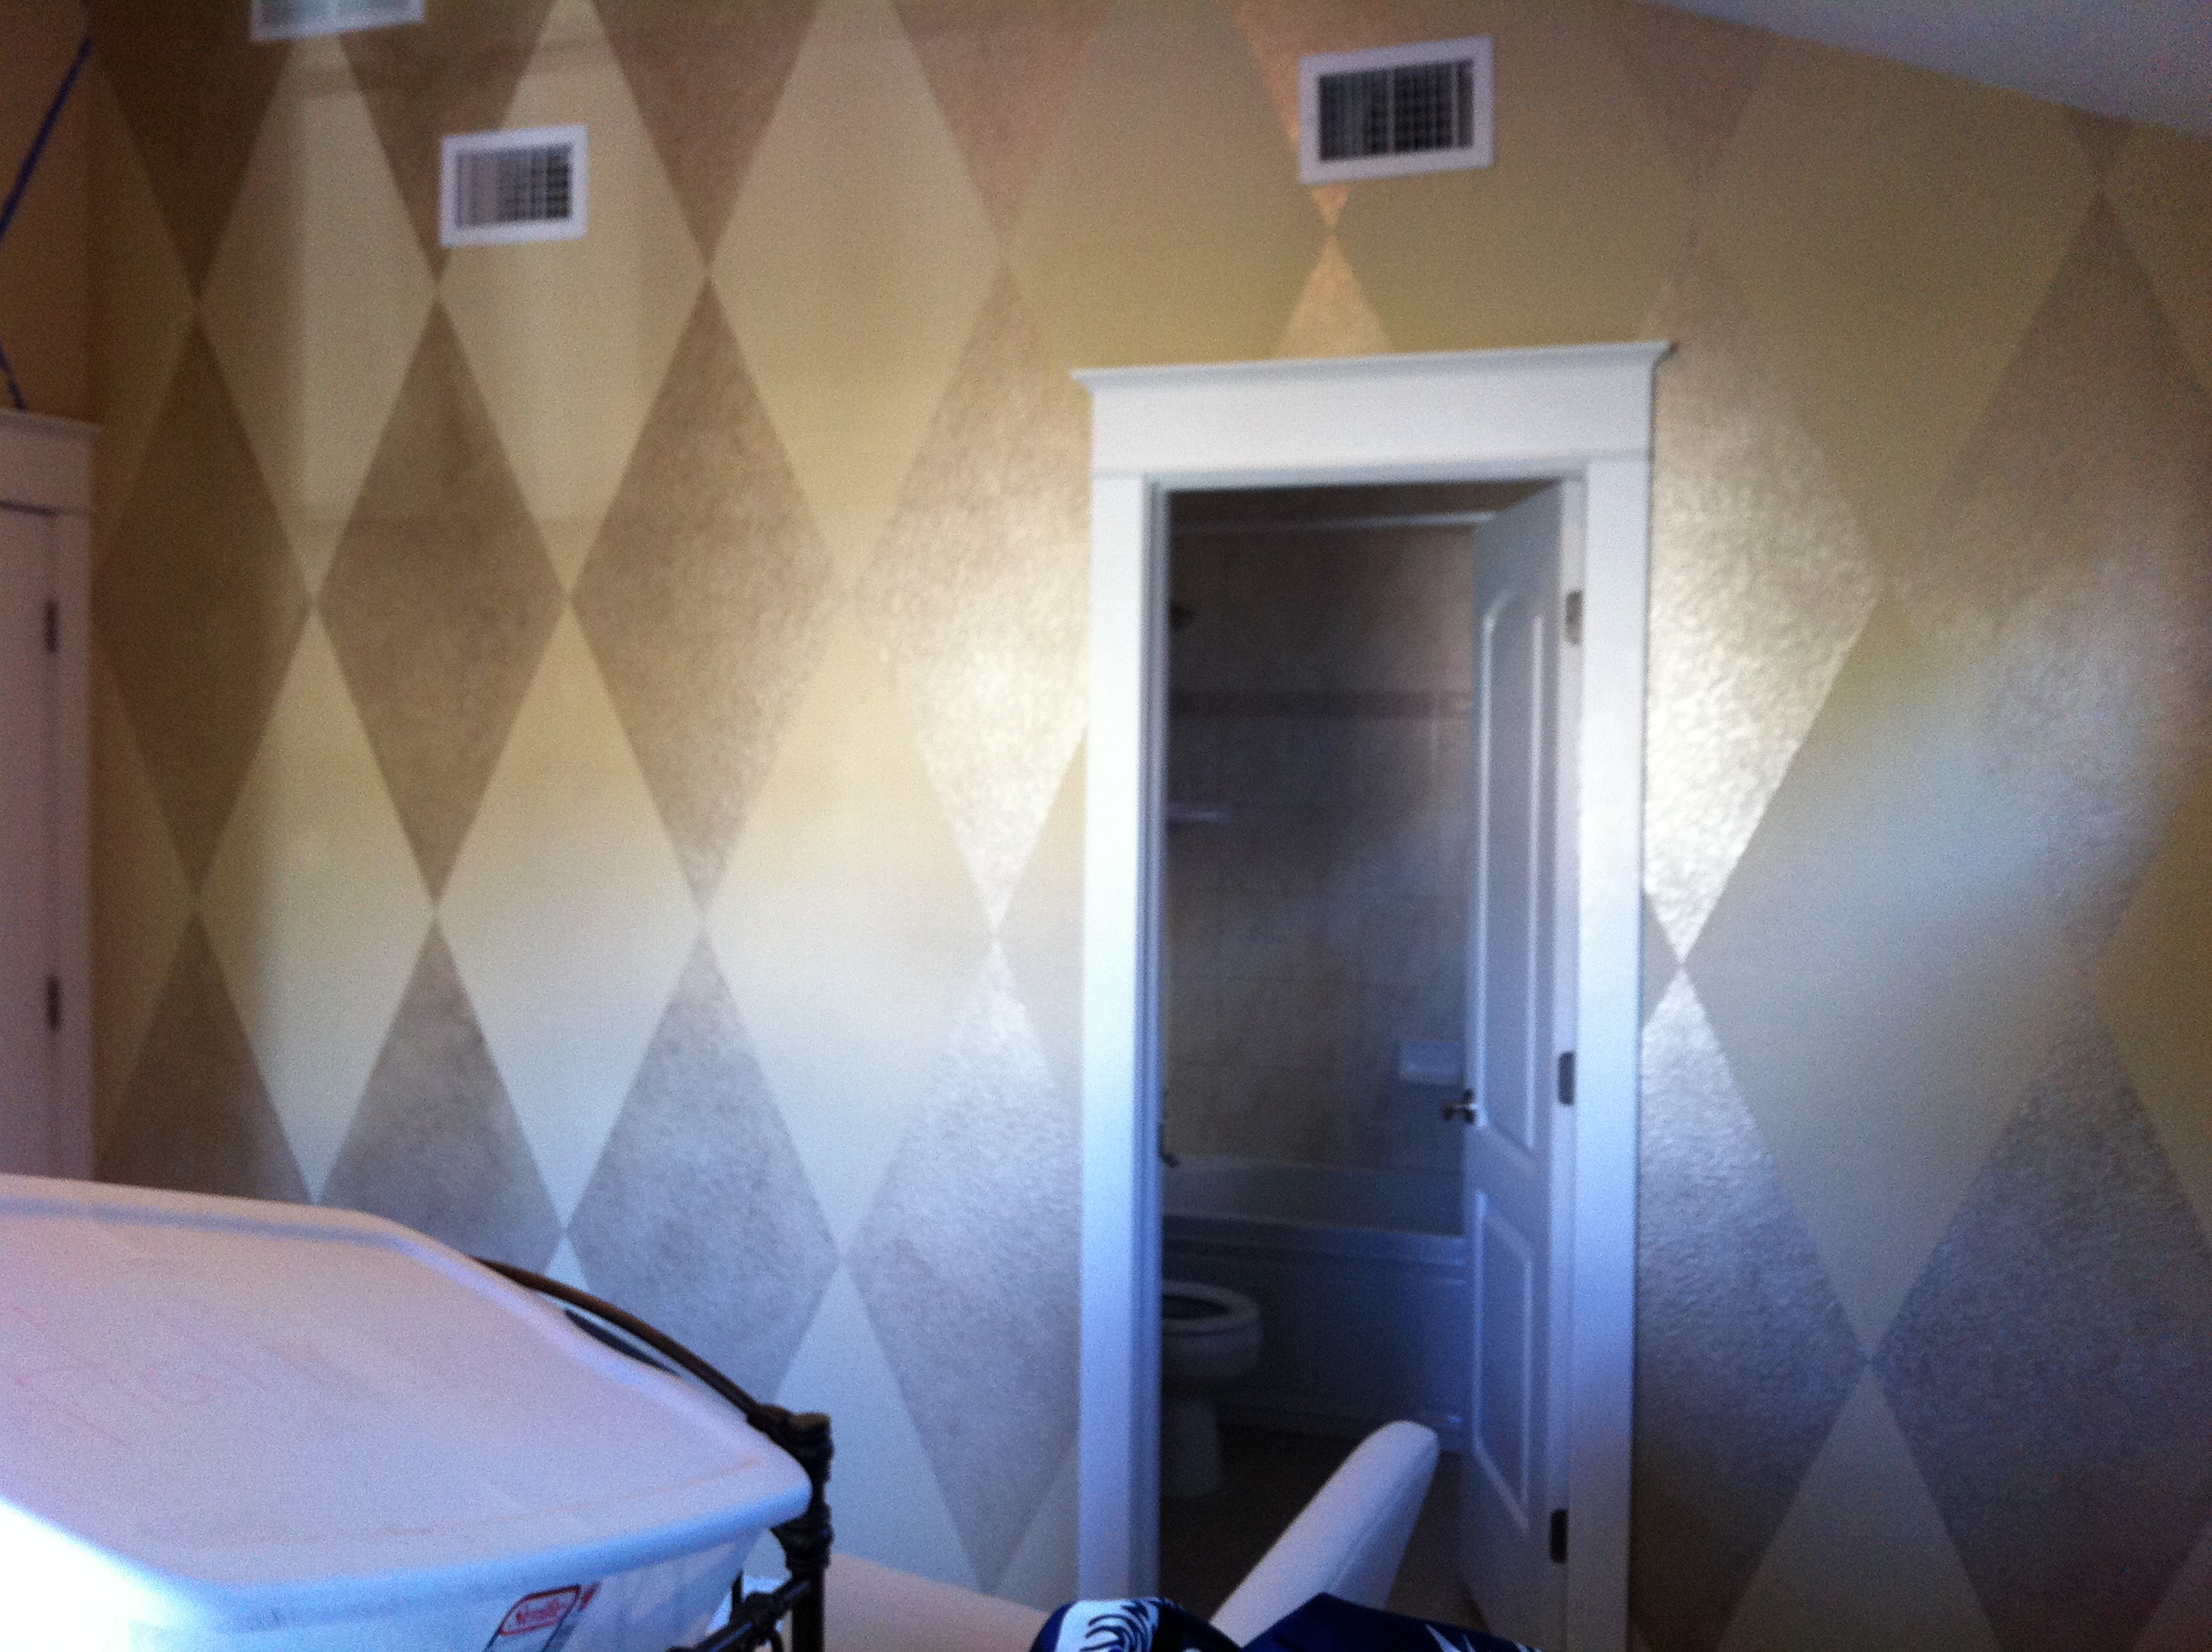 Metallic Harlequin Diamond Nursery